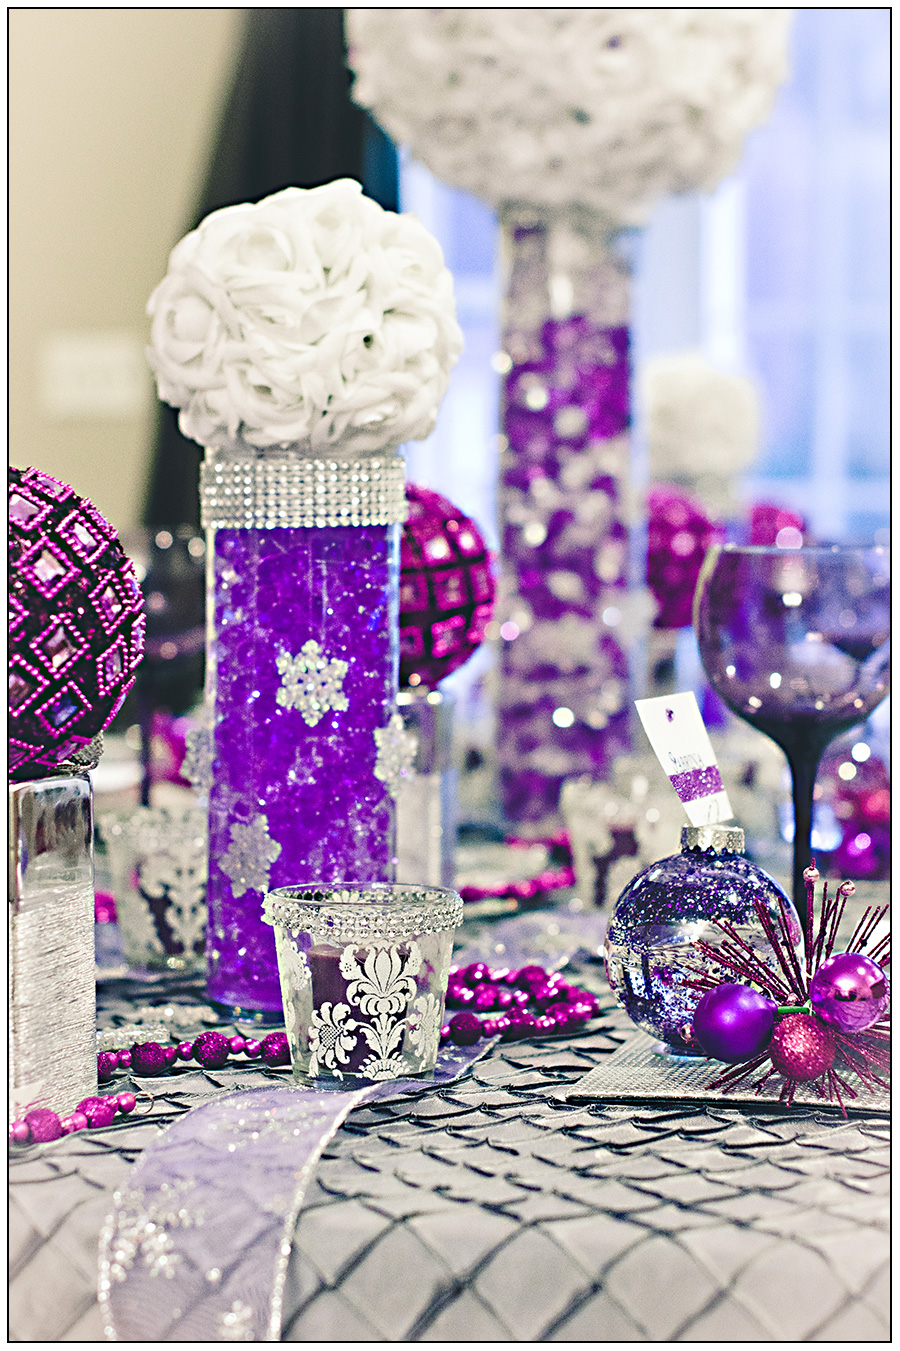 Events that sparkle a winter wonderland